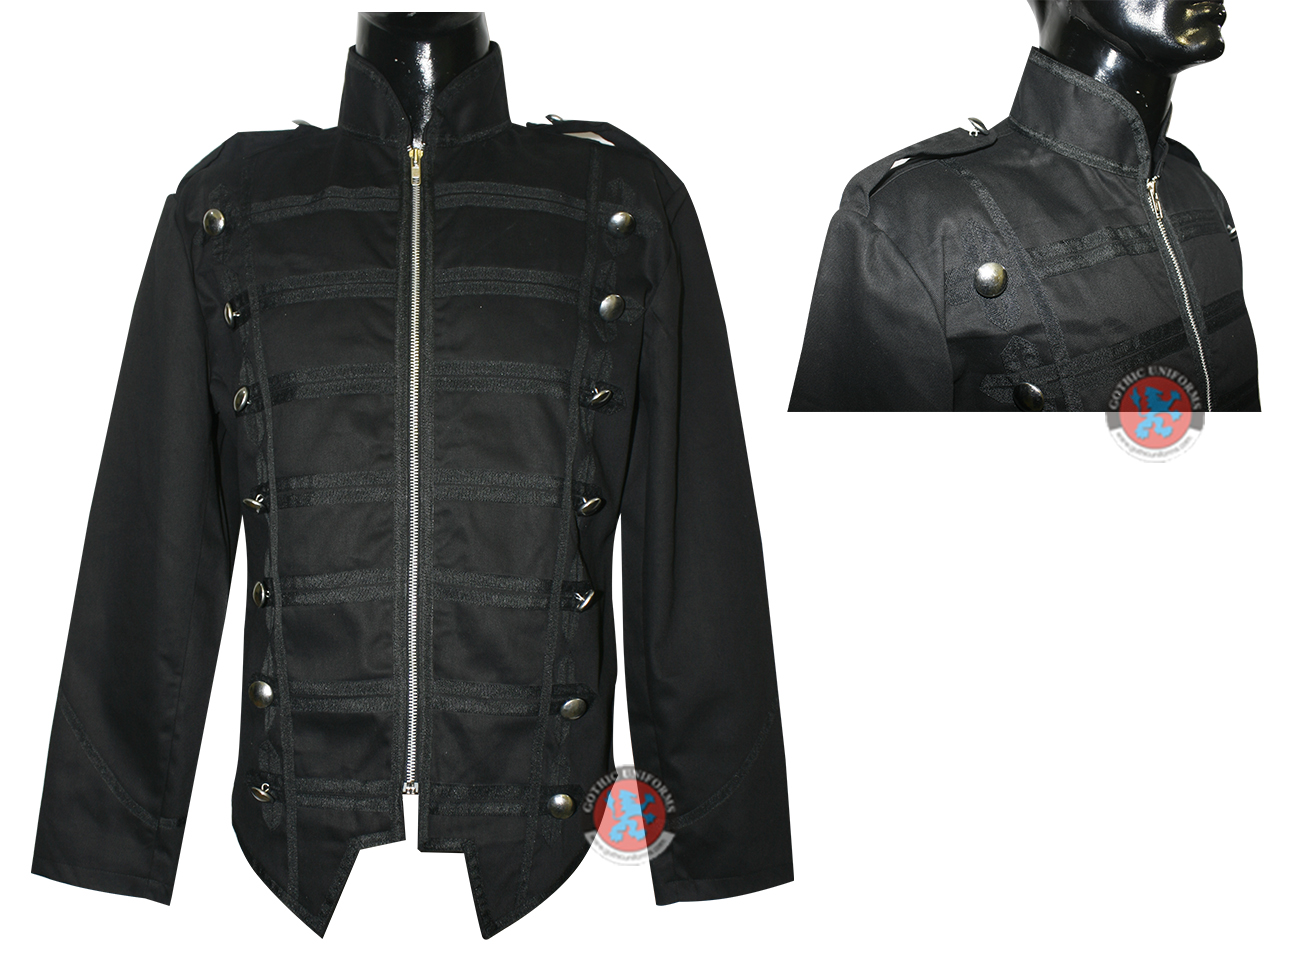 Black Color 100% Cotton Mens Jacket one zip, Braid and Bottons on Front. And Shoulders